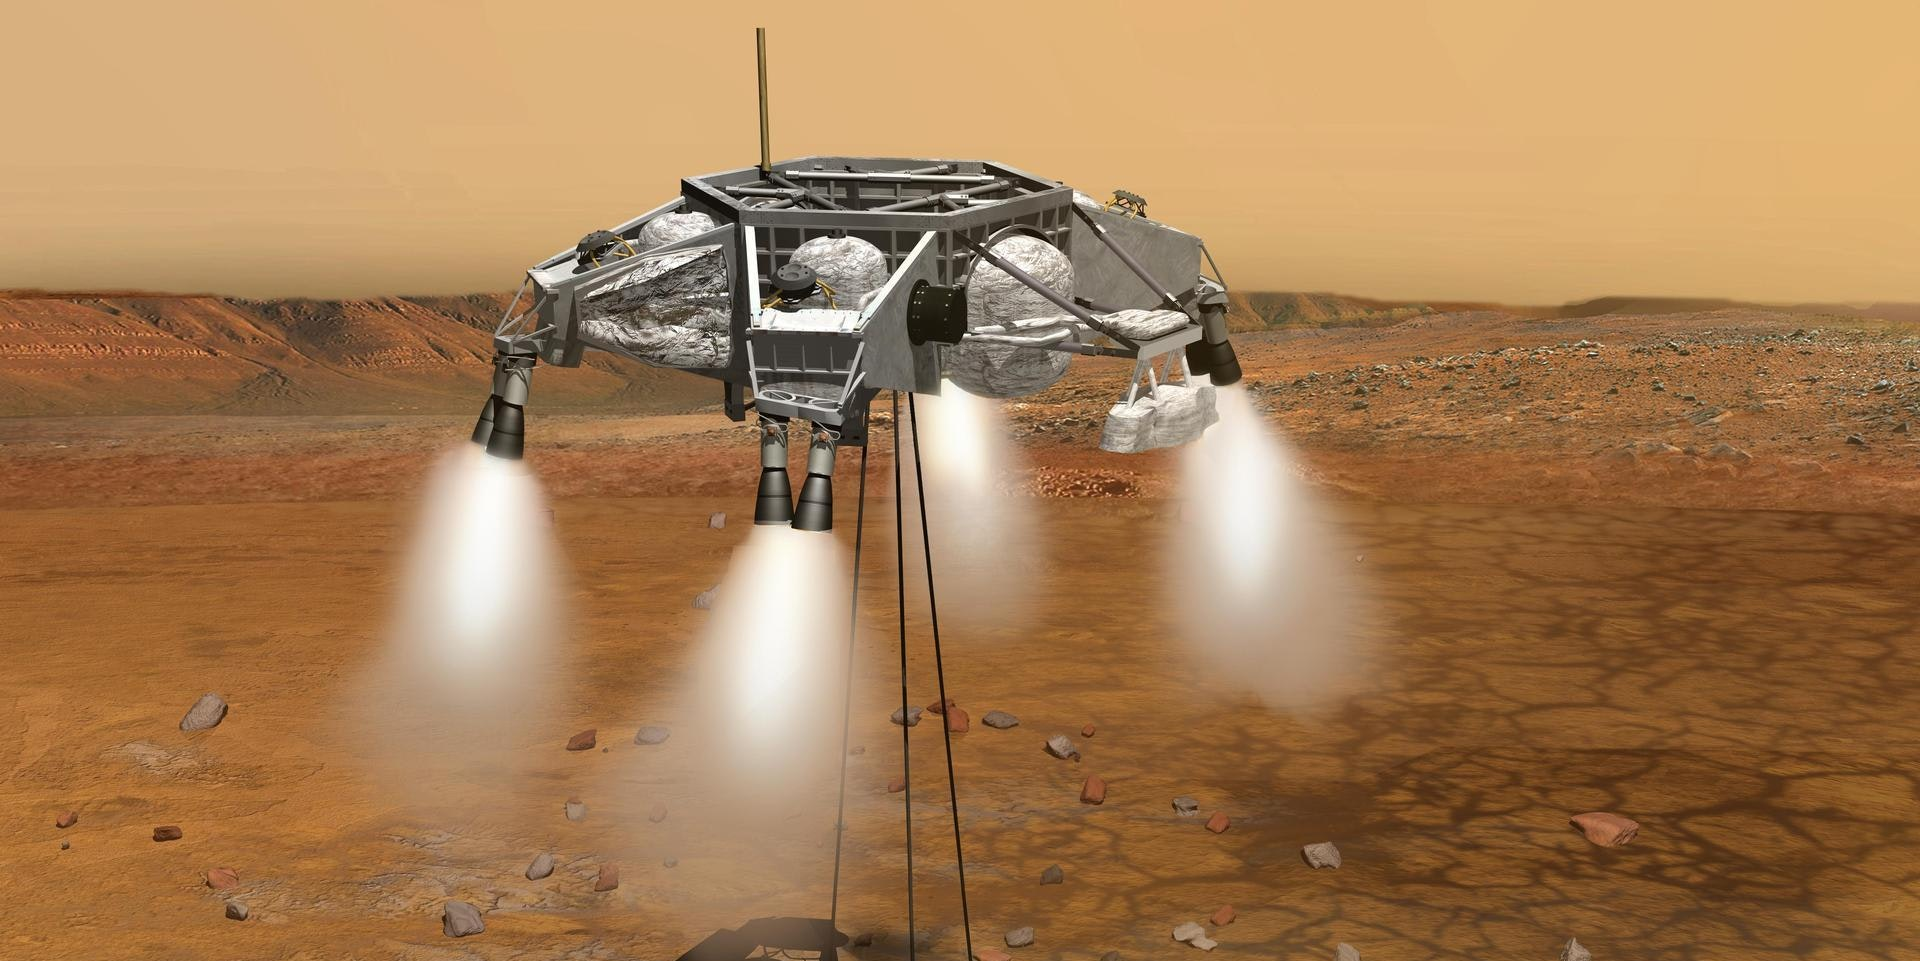 Genetically Engineered Bacteria Can Grow Food, Forks on Mars